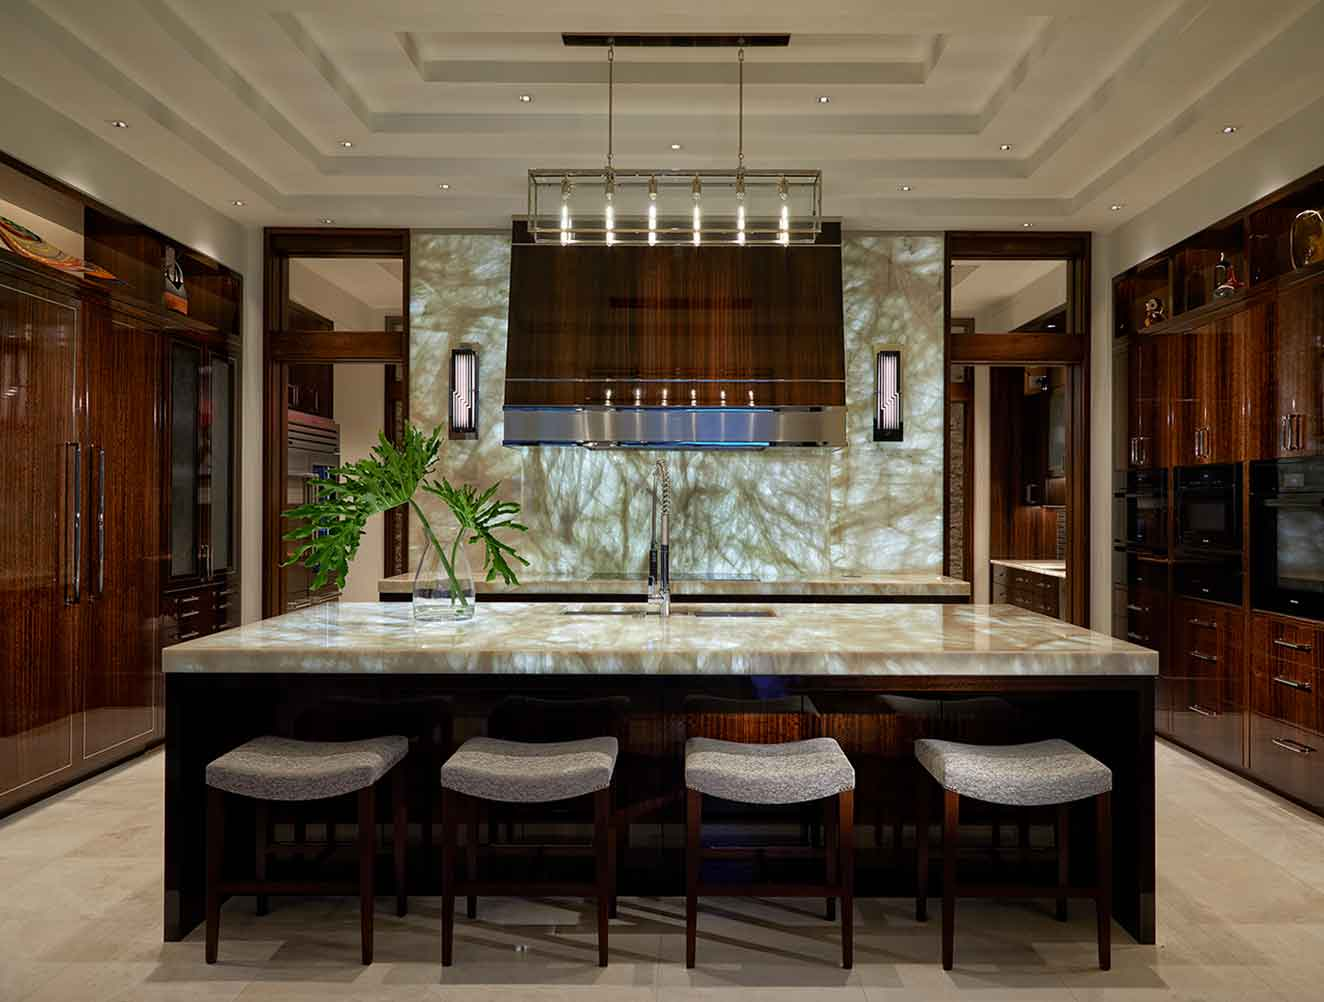 Kitchen of Tranquility Estate in Naples Florida, single family home designed by Kukk Architecture & Design Naples Architecture Firm